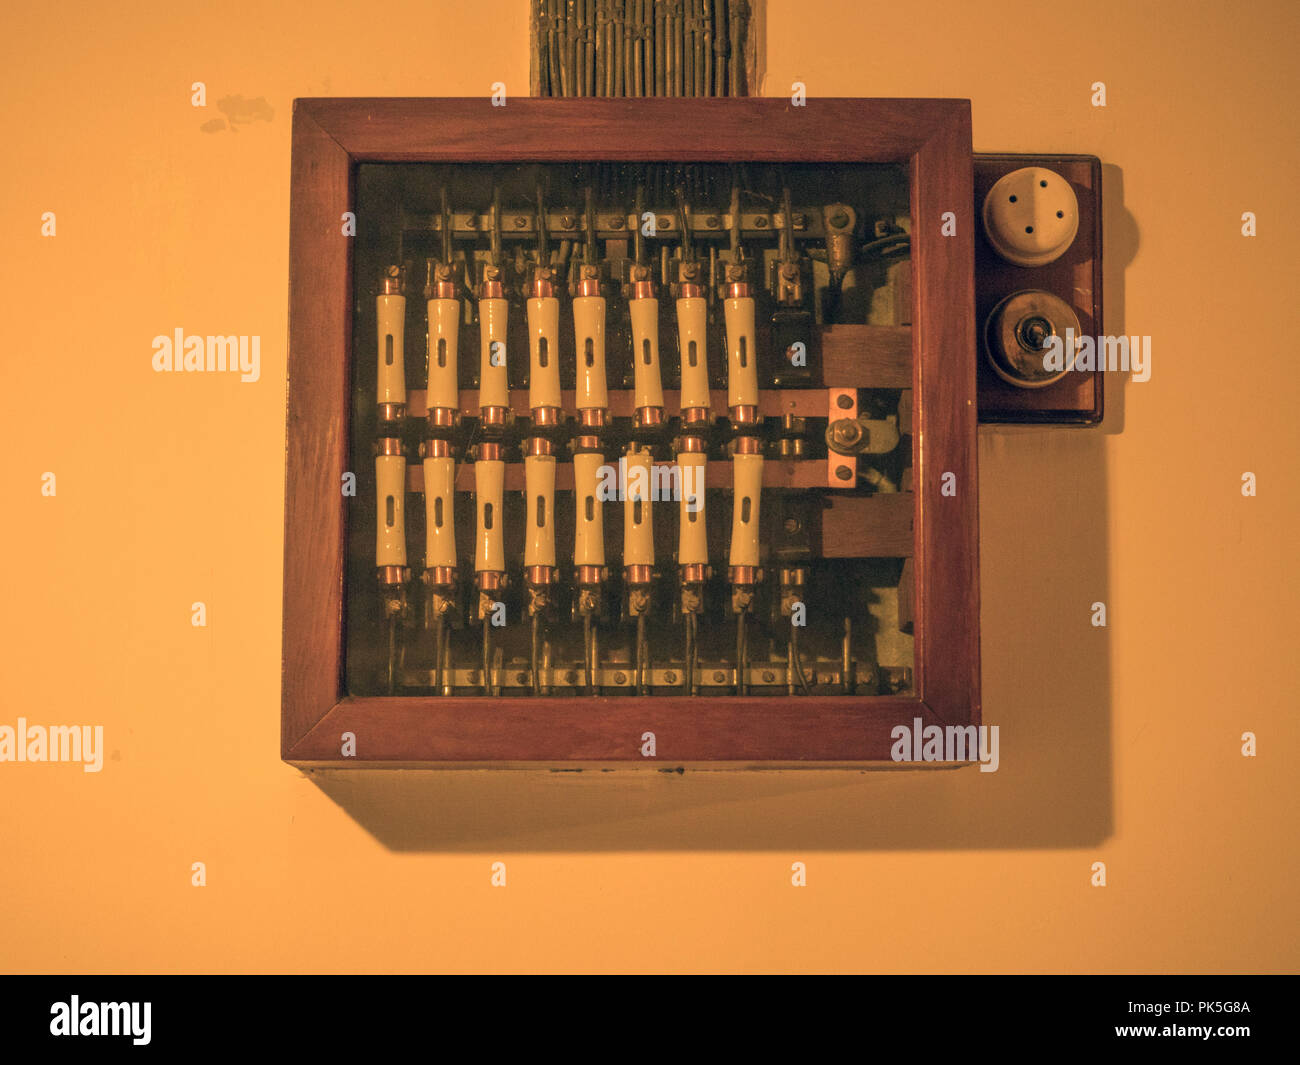 Swimming Pool Fuse Box Wiring Library Victorian Style Ceramic Stock Image